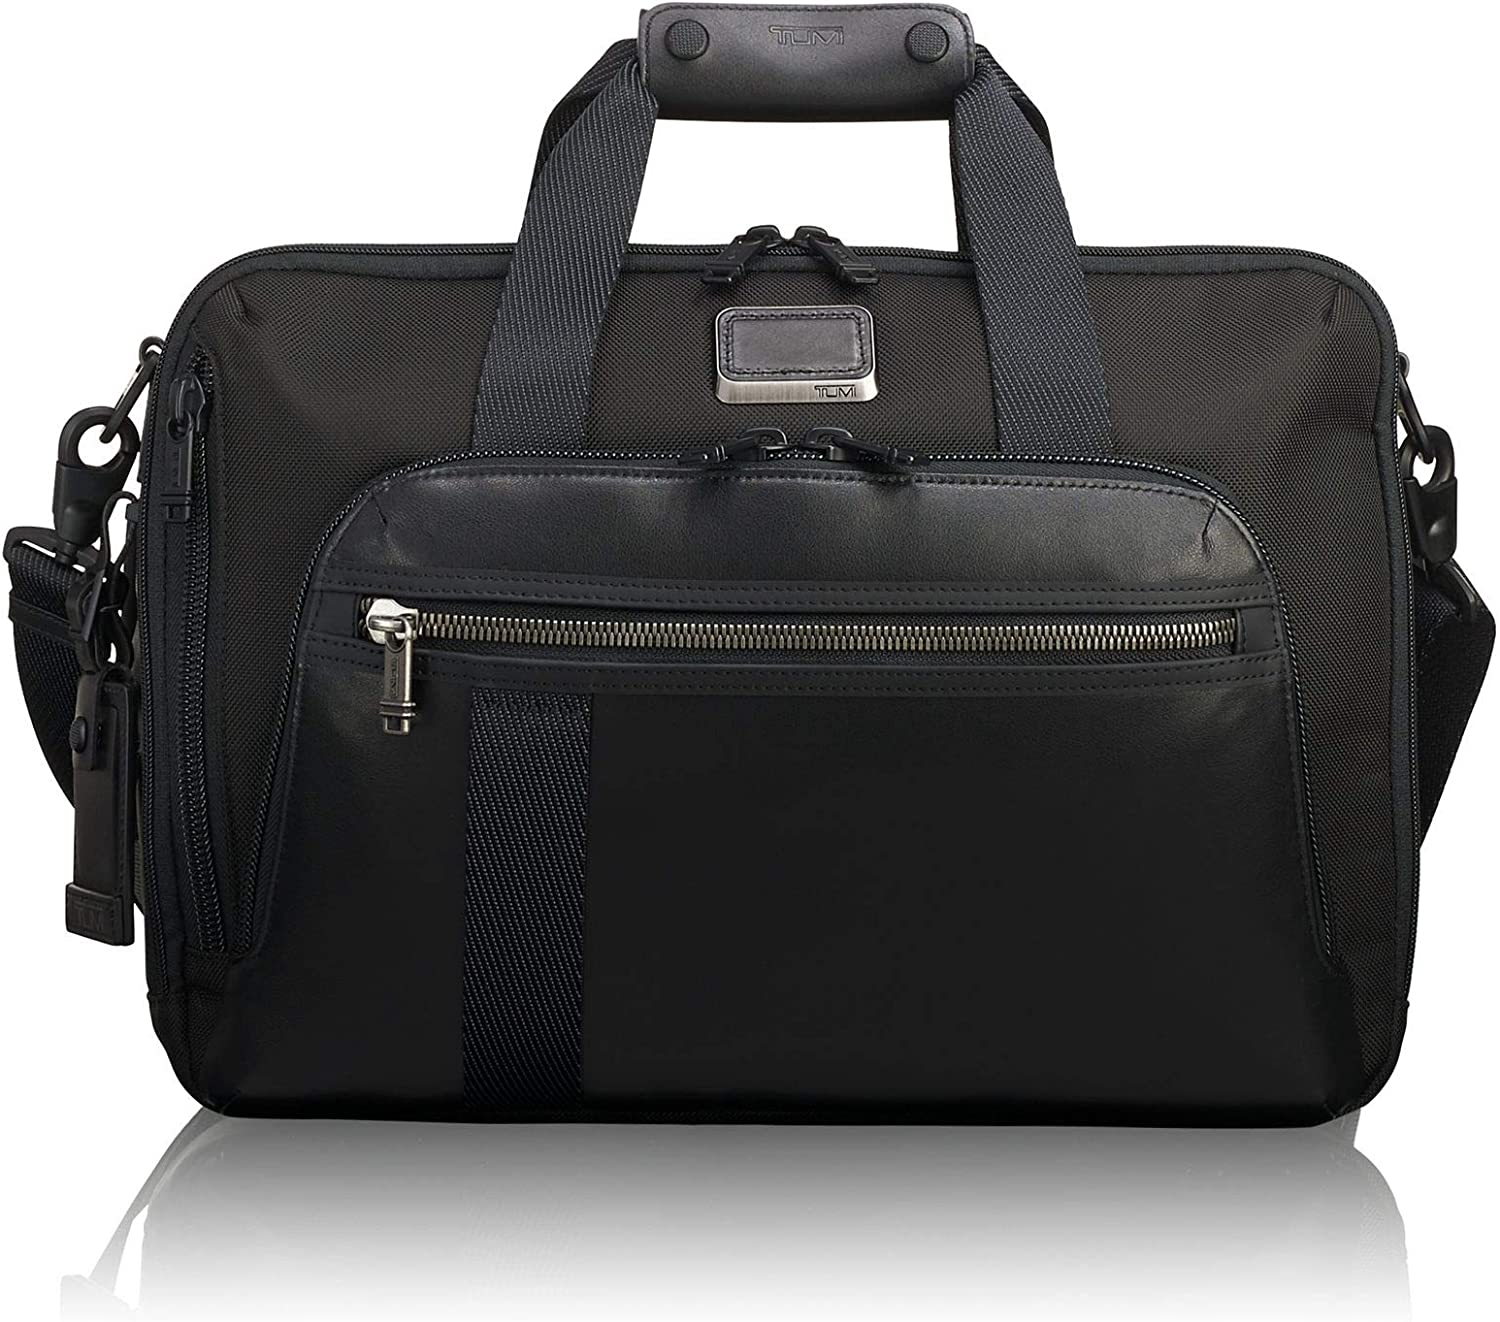 TUMI – Alpha Bravo Mountain Three Way Brief Laptop Briefcase – 15 Inch Computer Backpack Bag for Men and Women – Black